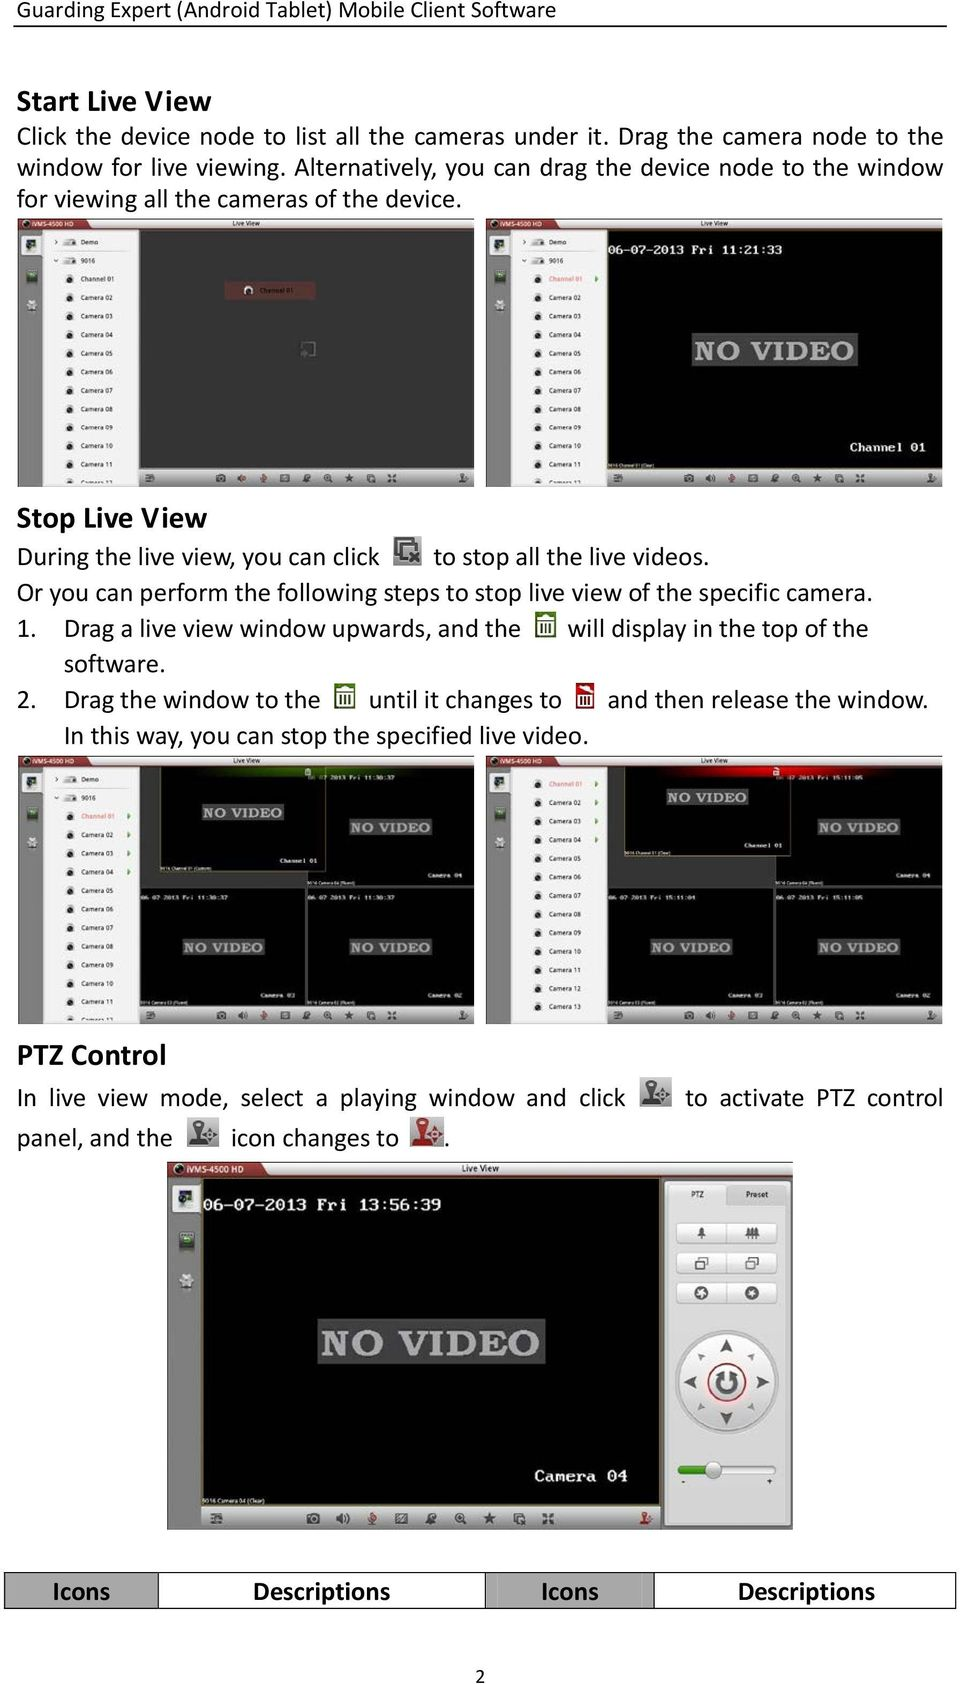 Or you can perform the following steps to stop live view of the specific camera. 1. Drag a live view window upwards, and the will display in the top of the software. 2.